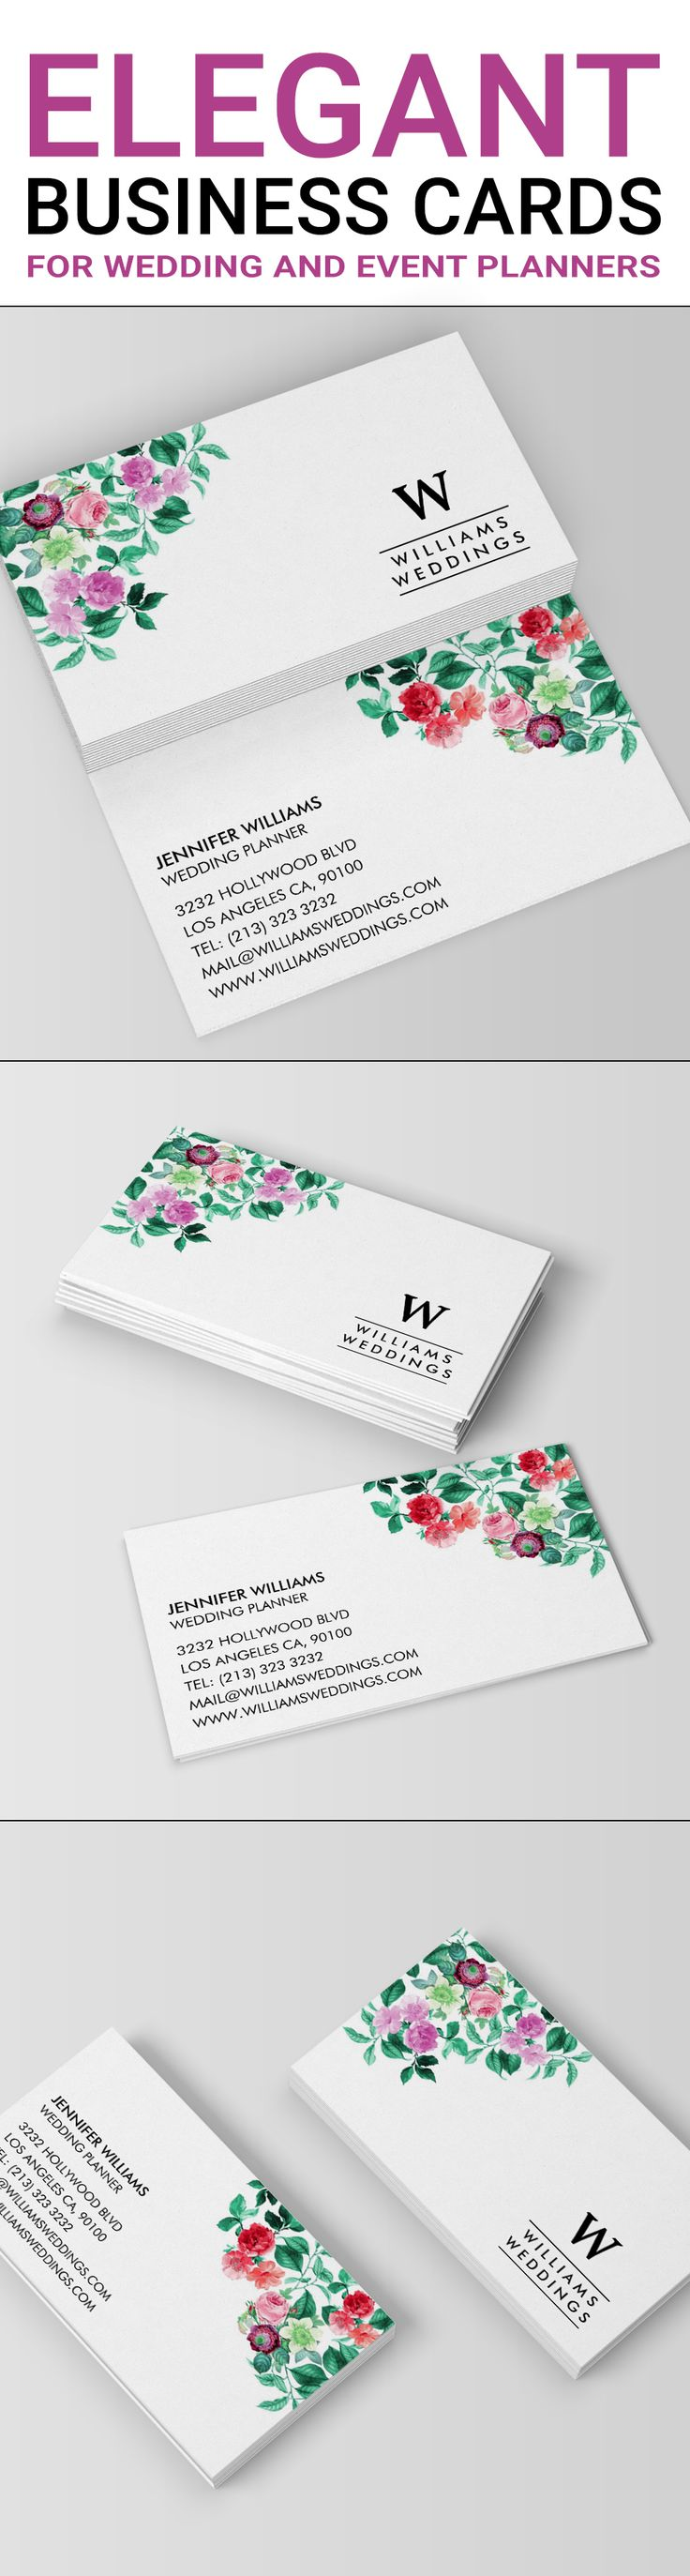 Best 25 elegant business cards ideas on pinterest business card elegant floral flower wedding event planner business card magicingreecefo Gallery